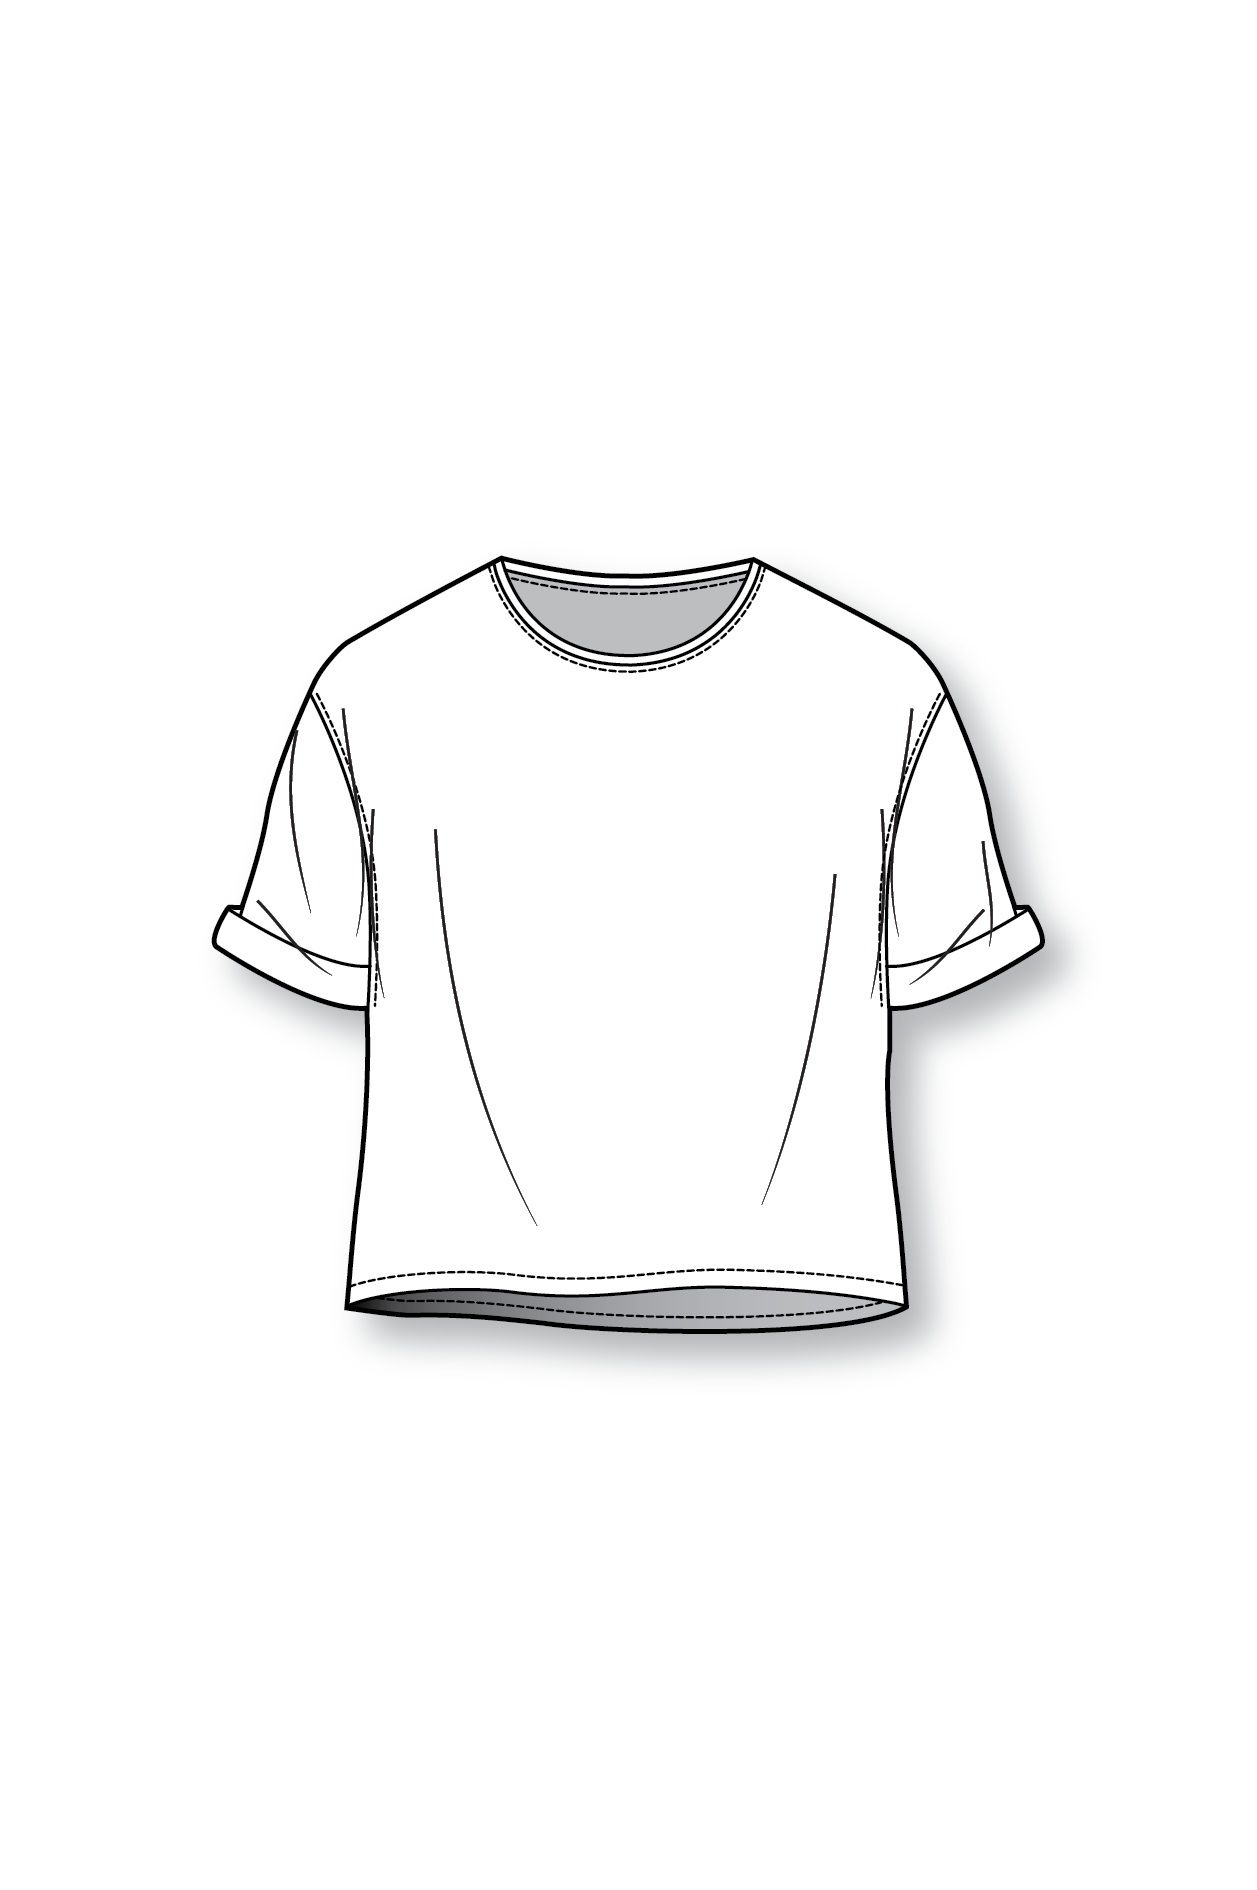 Scribble Drawing T Shirt : Boxy t shirt patternmaking pinterest sketches